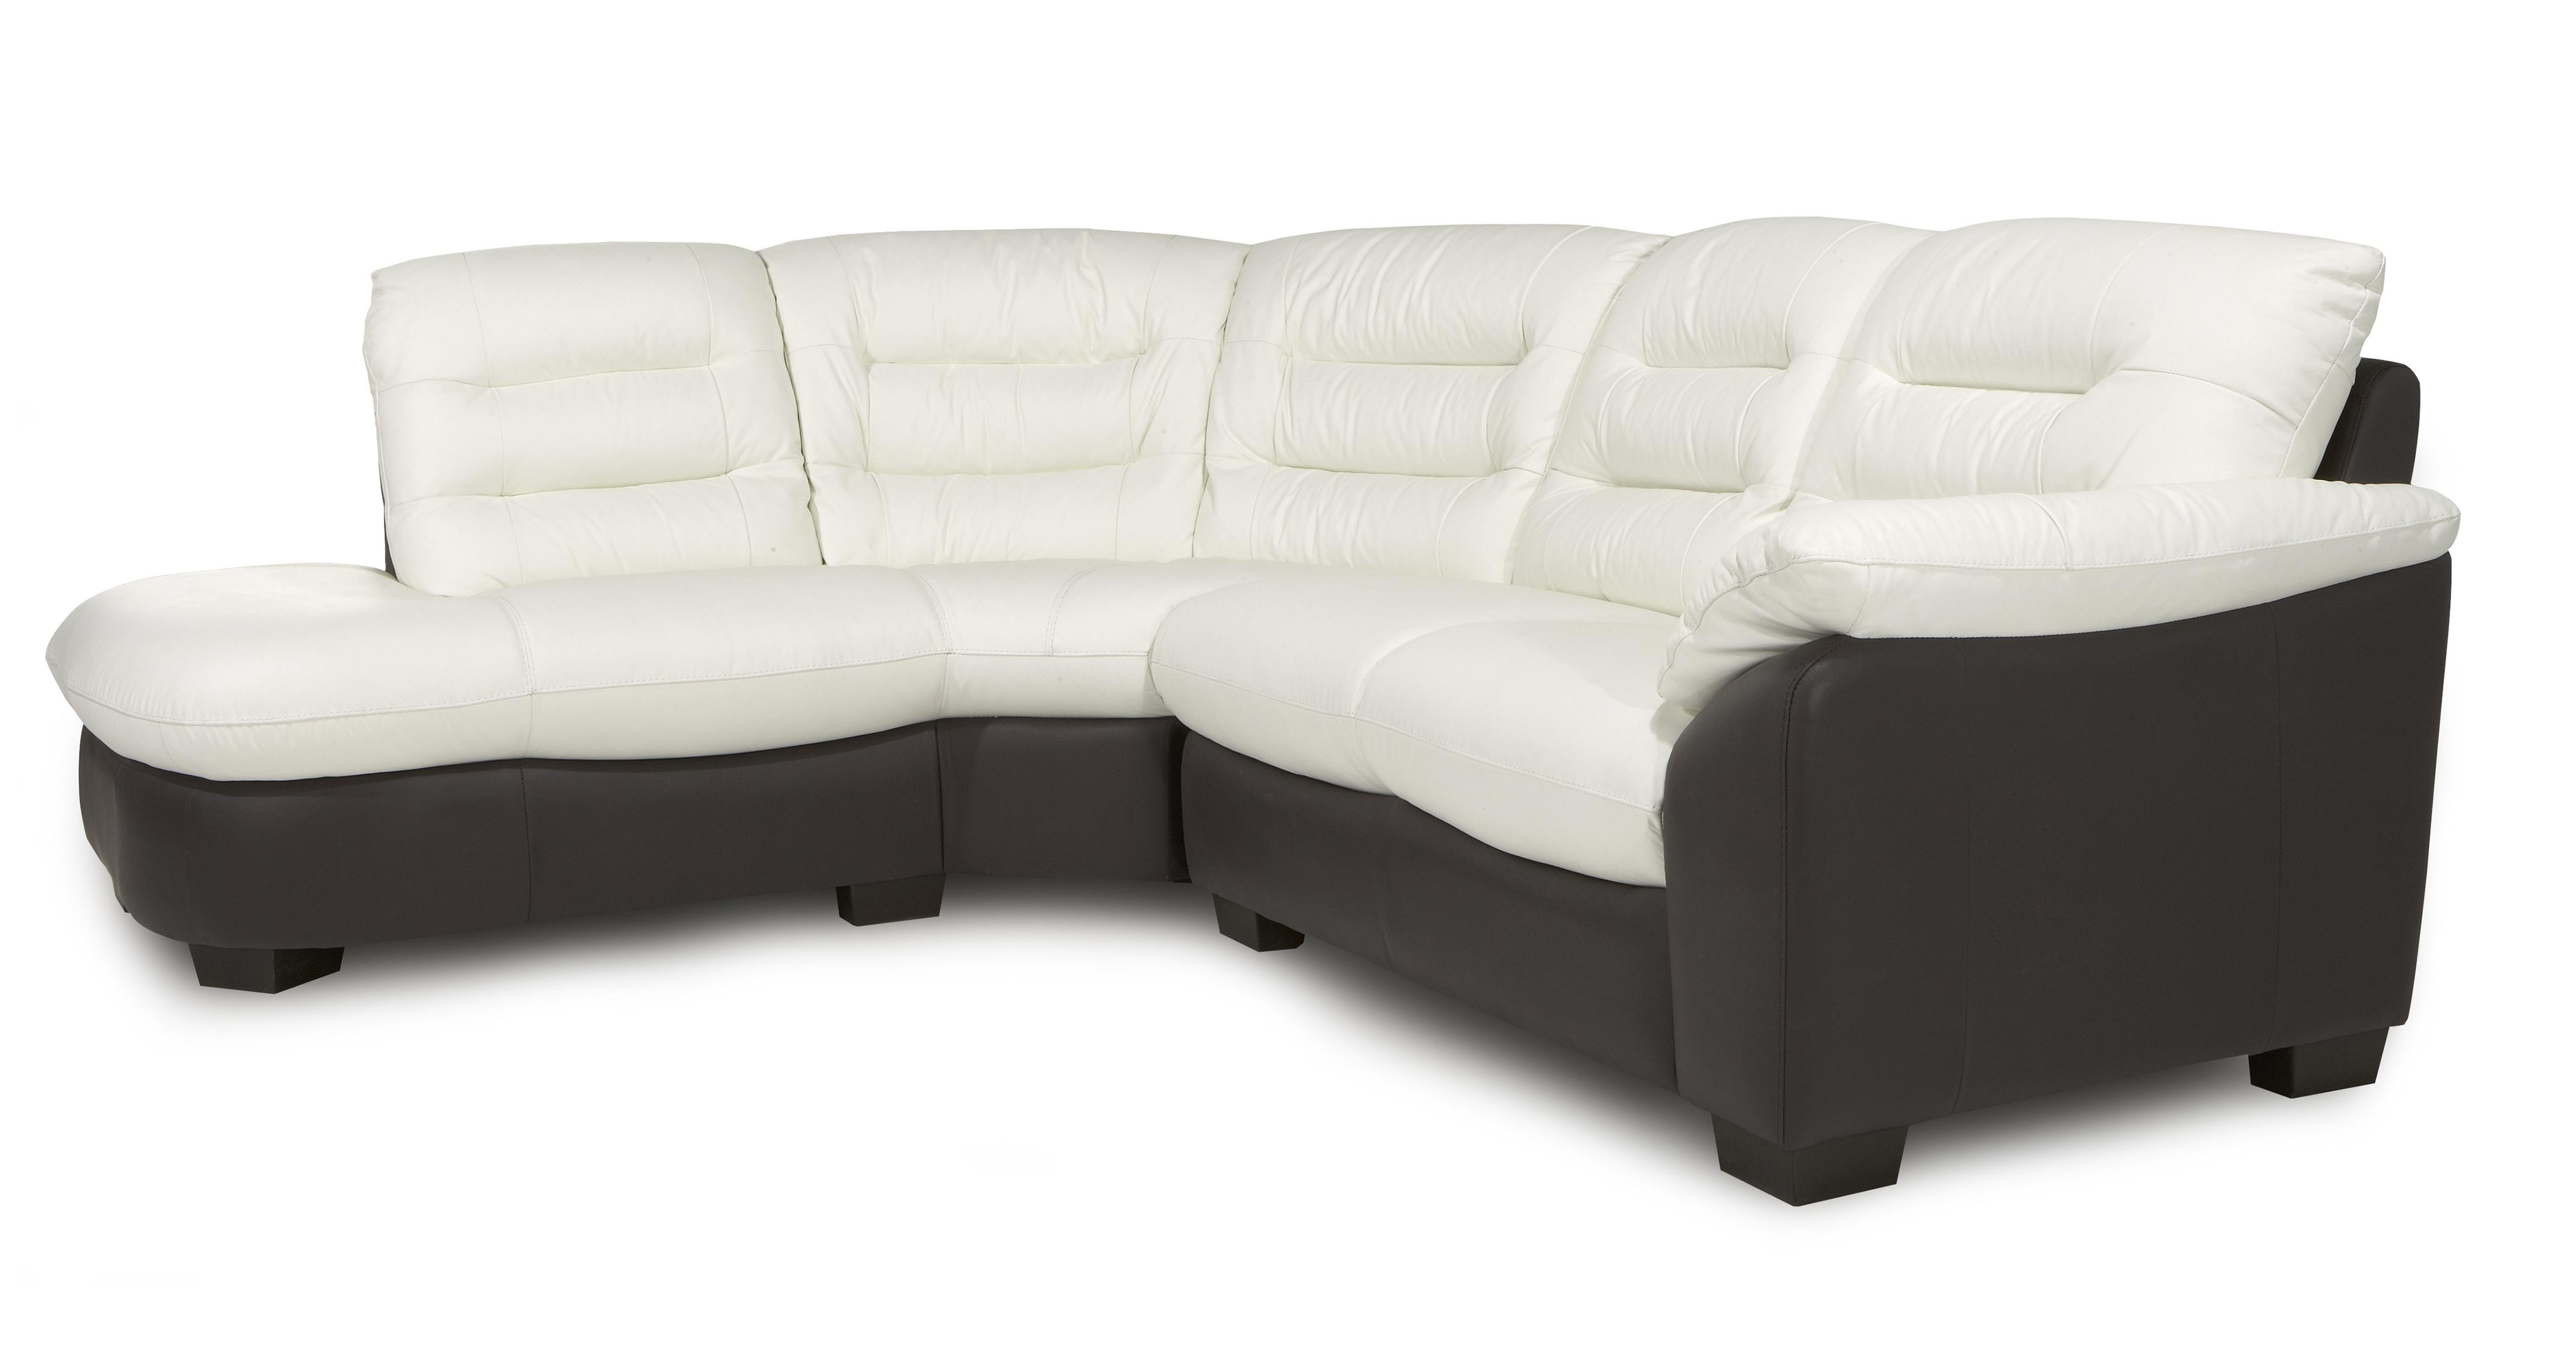 dfs moray sofa reviews leather outlets uk matinee brokeasshome